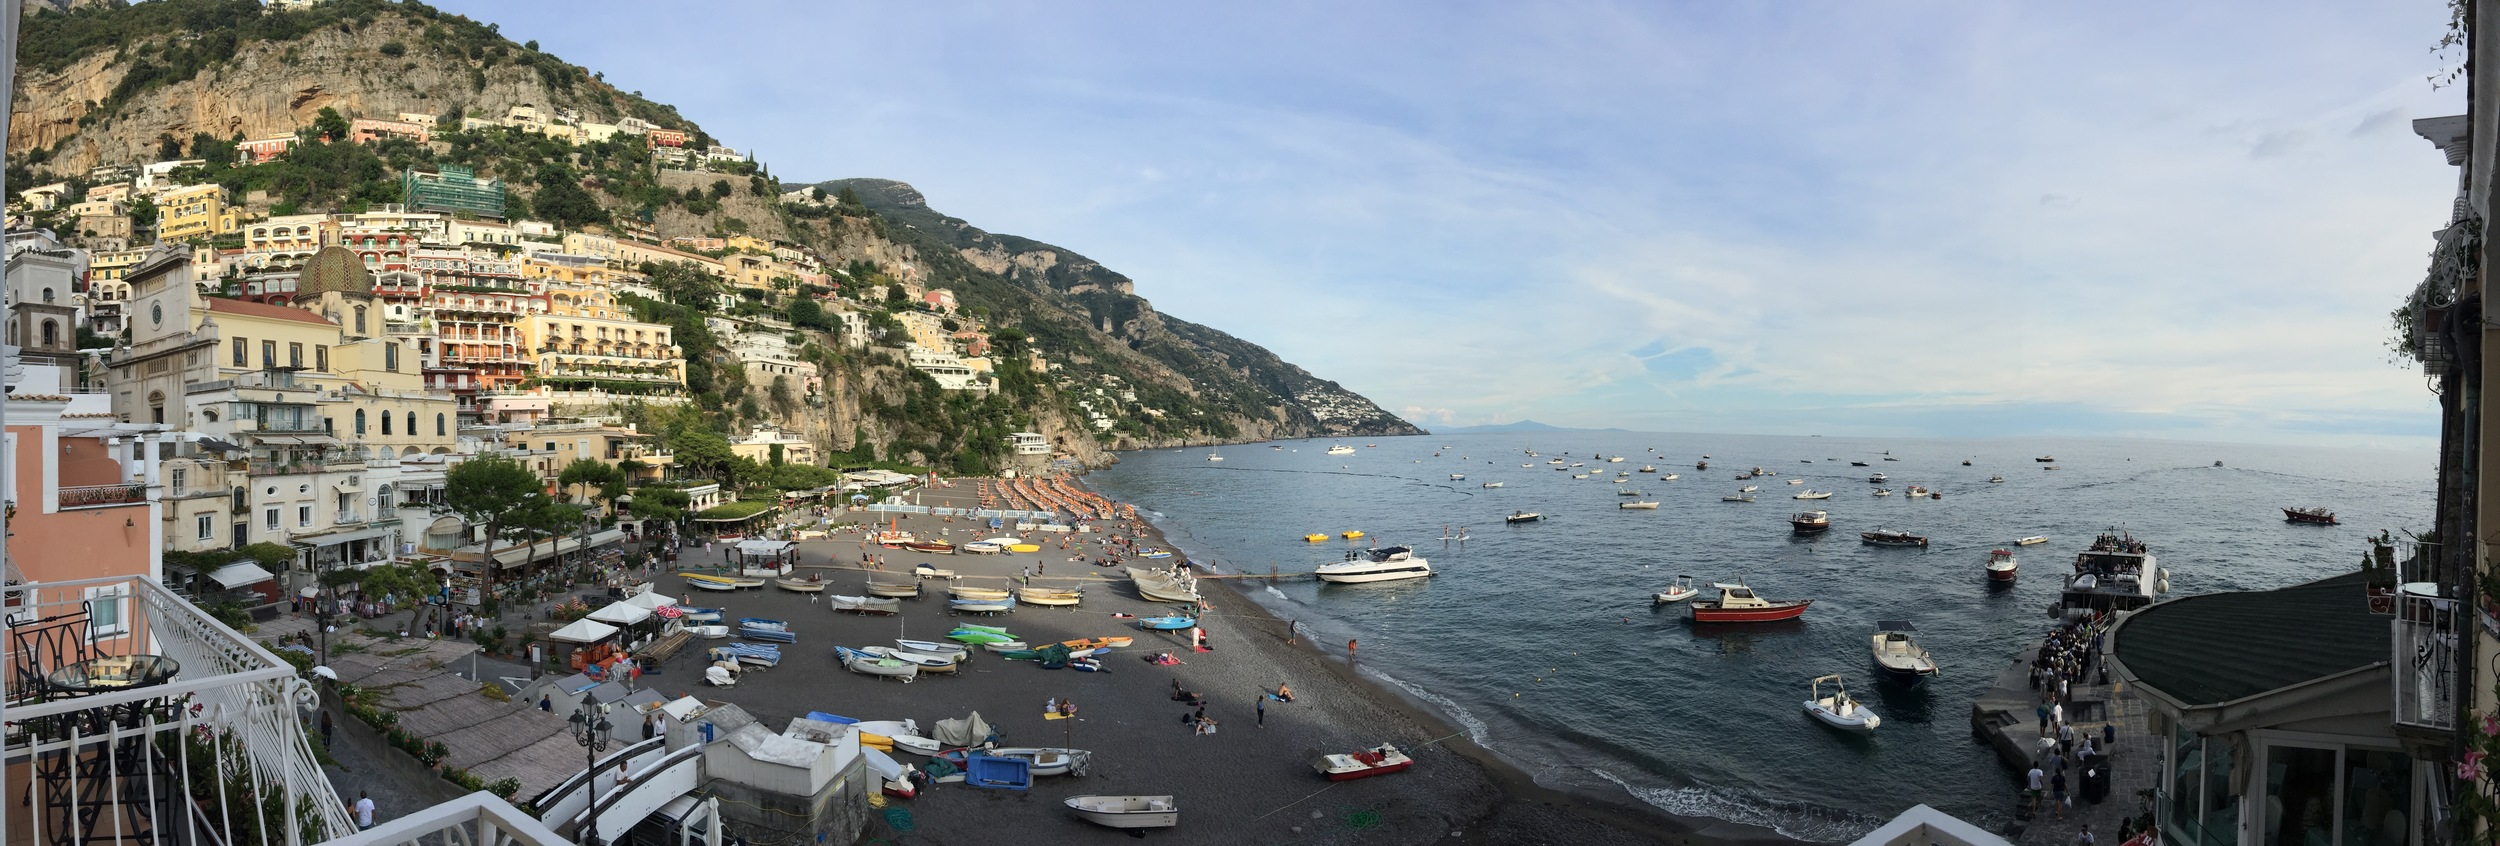 Amalfi Coast - Candelaria Design Tour Italy September 2016